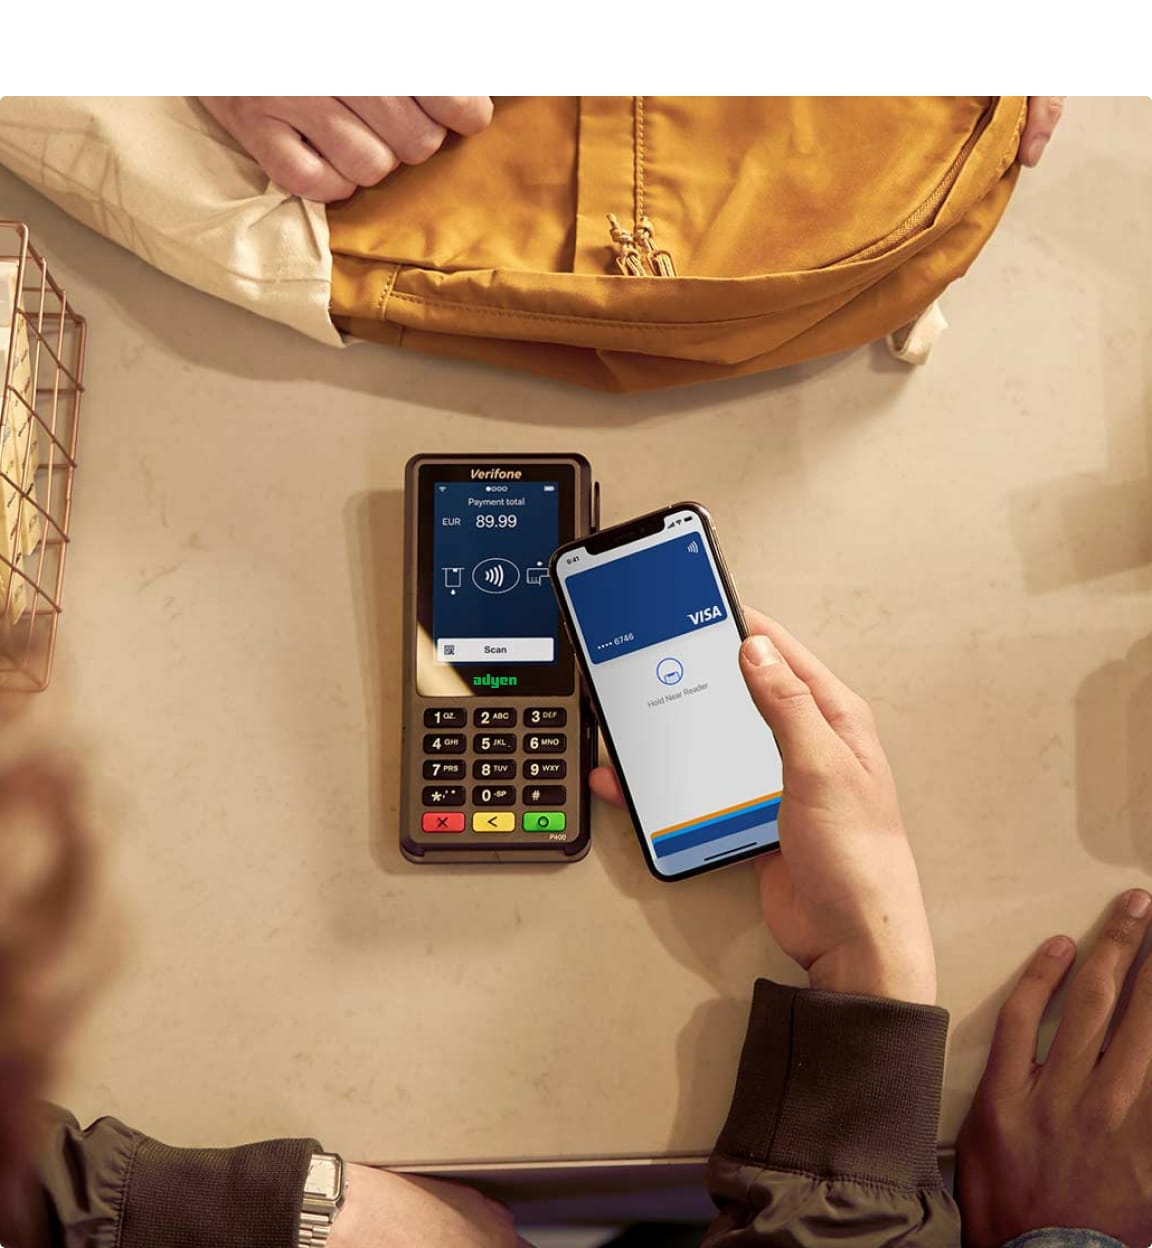 Point of sale payment terminal and digital wallet